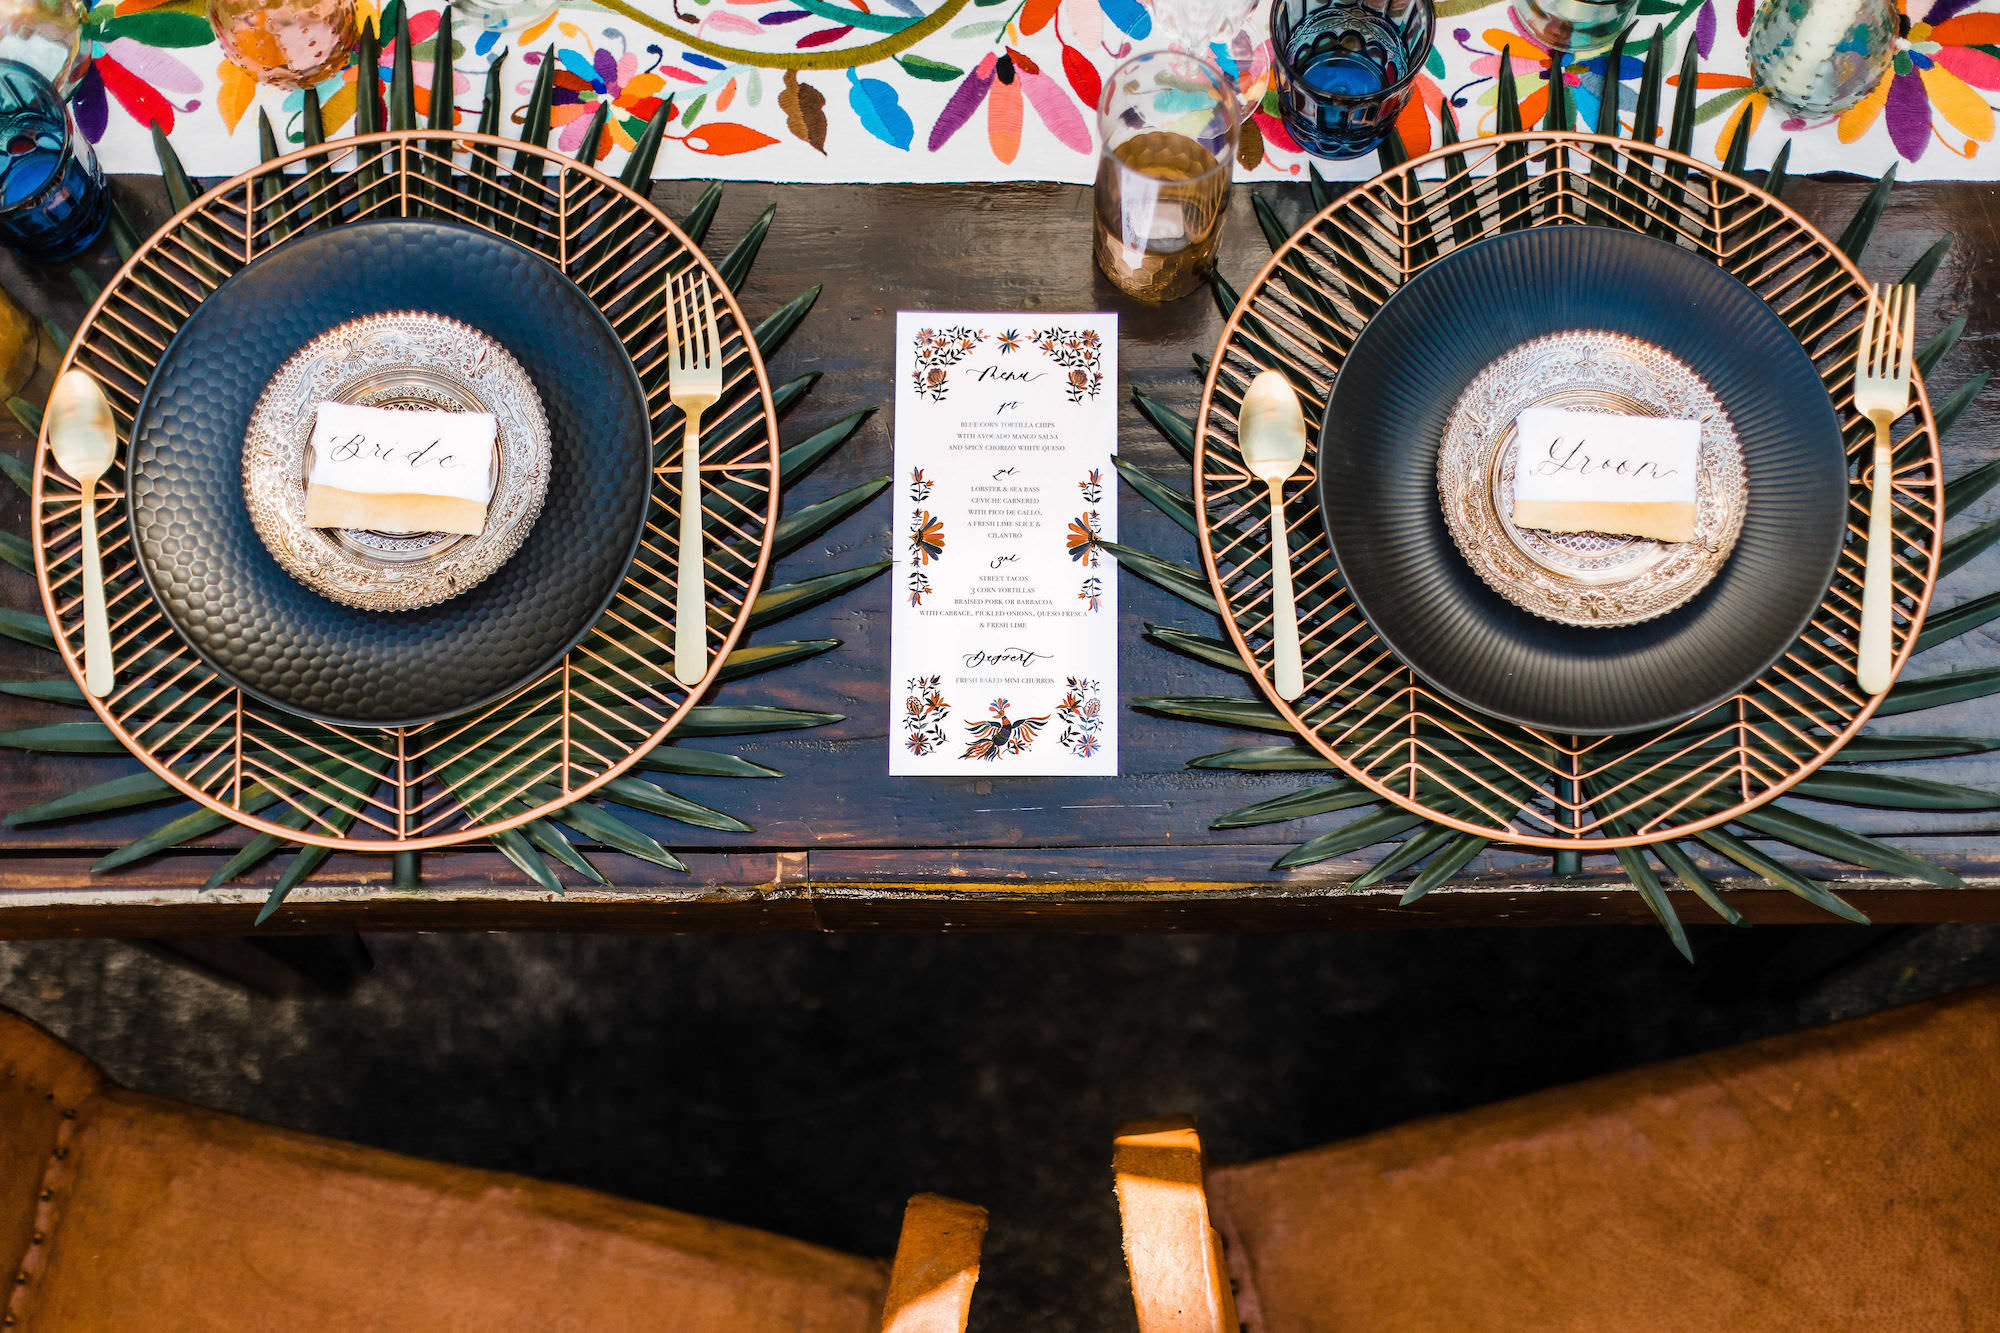 Mexican Inspired Wedding Reception Decor with Modern Geometric Plate Charger with Whimsical Accent Decor